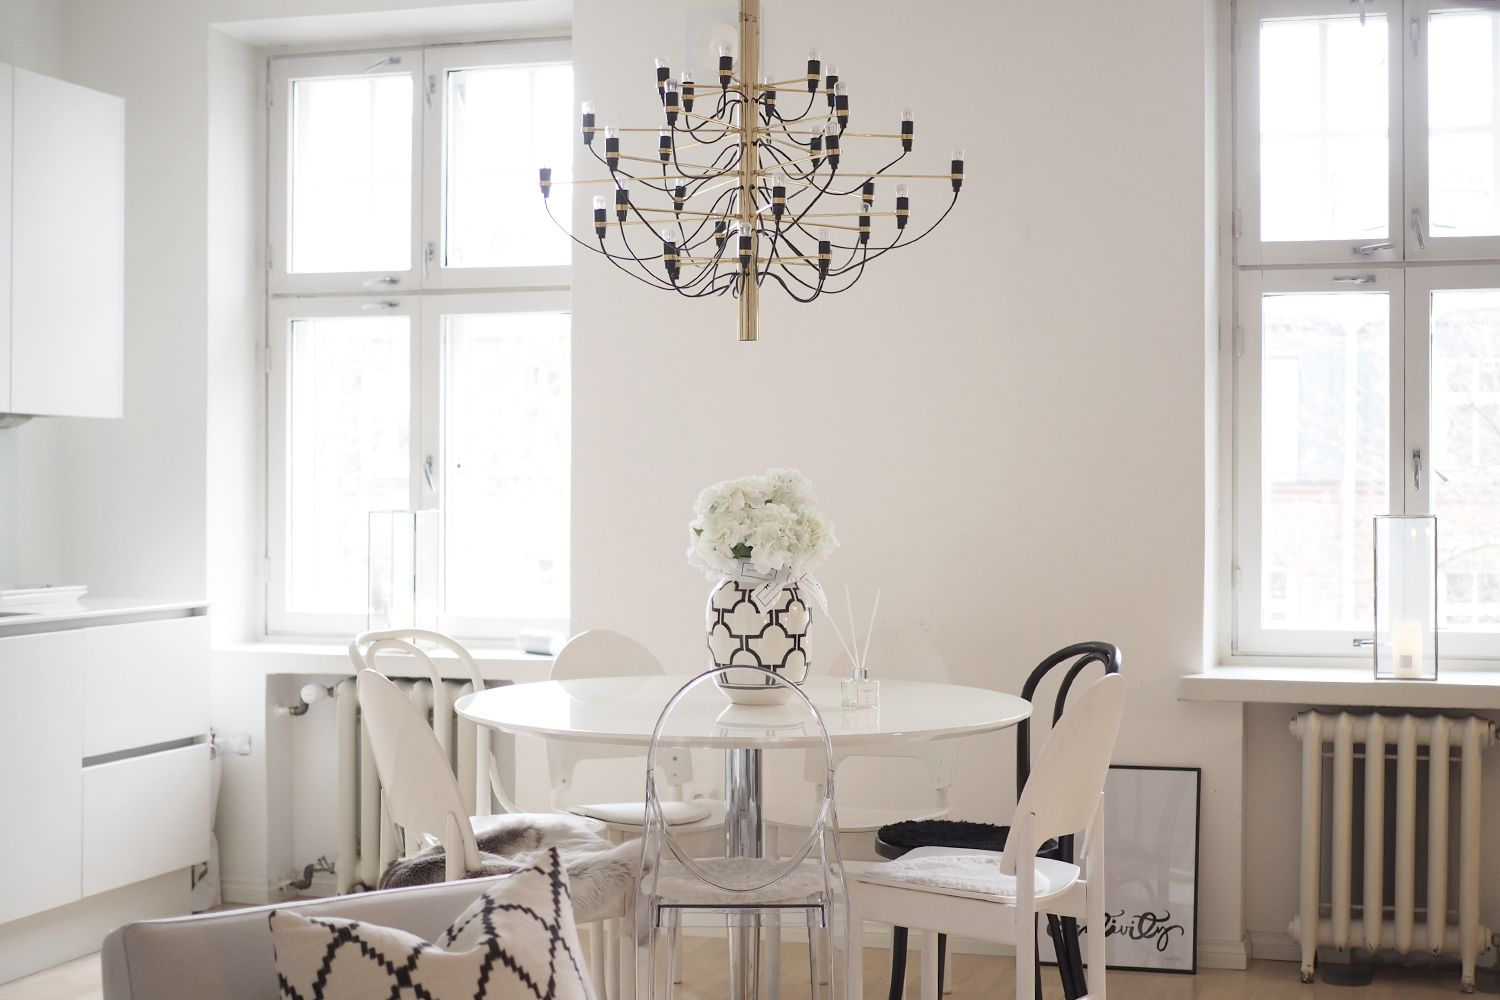 Pictures from a freshly cleaned home - modern, scandinavian style in white: http://www.idealista.fi/charandthecity/2017/01/23/freska-kotisiivous/